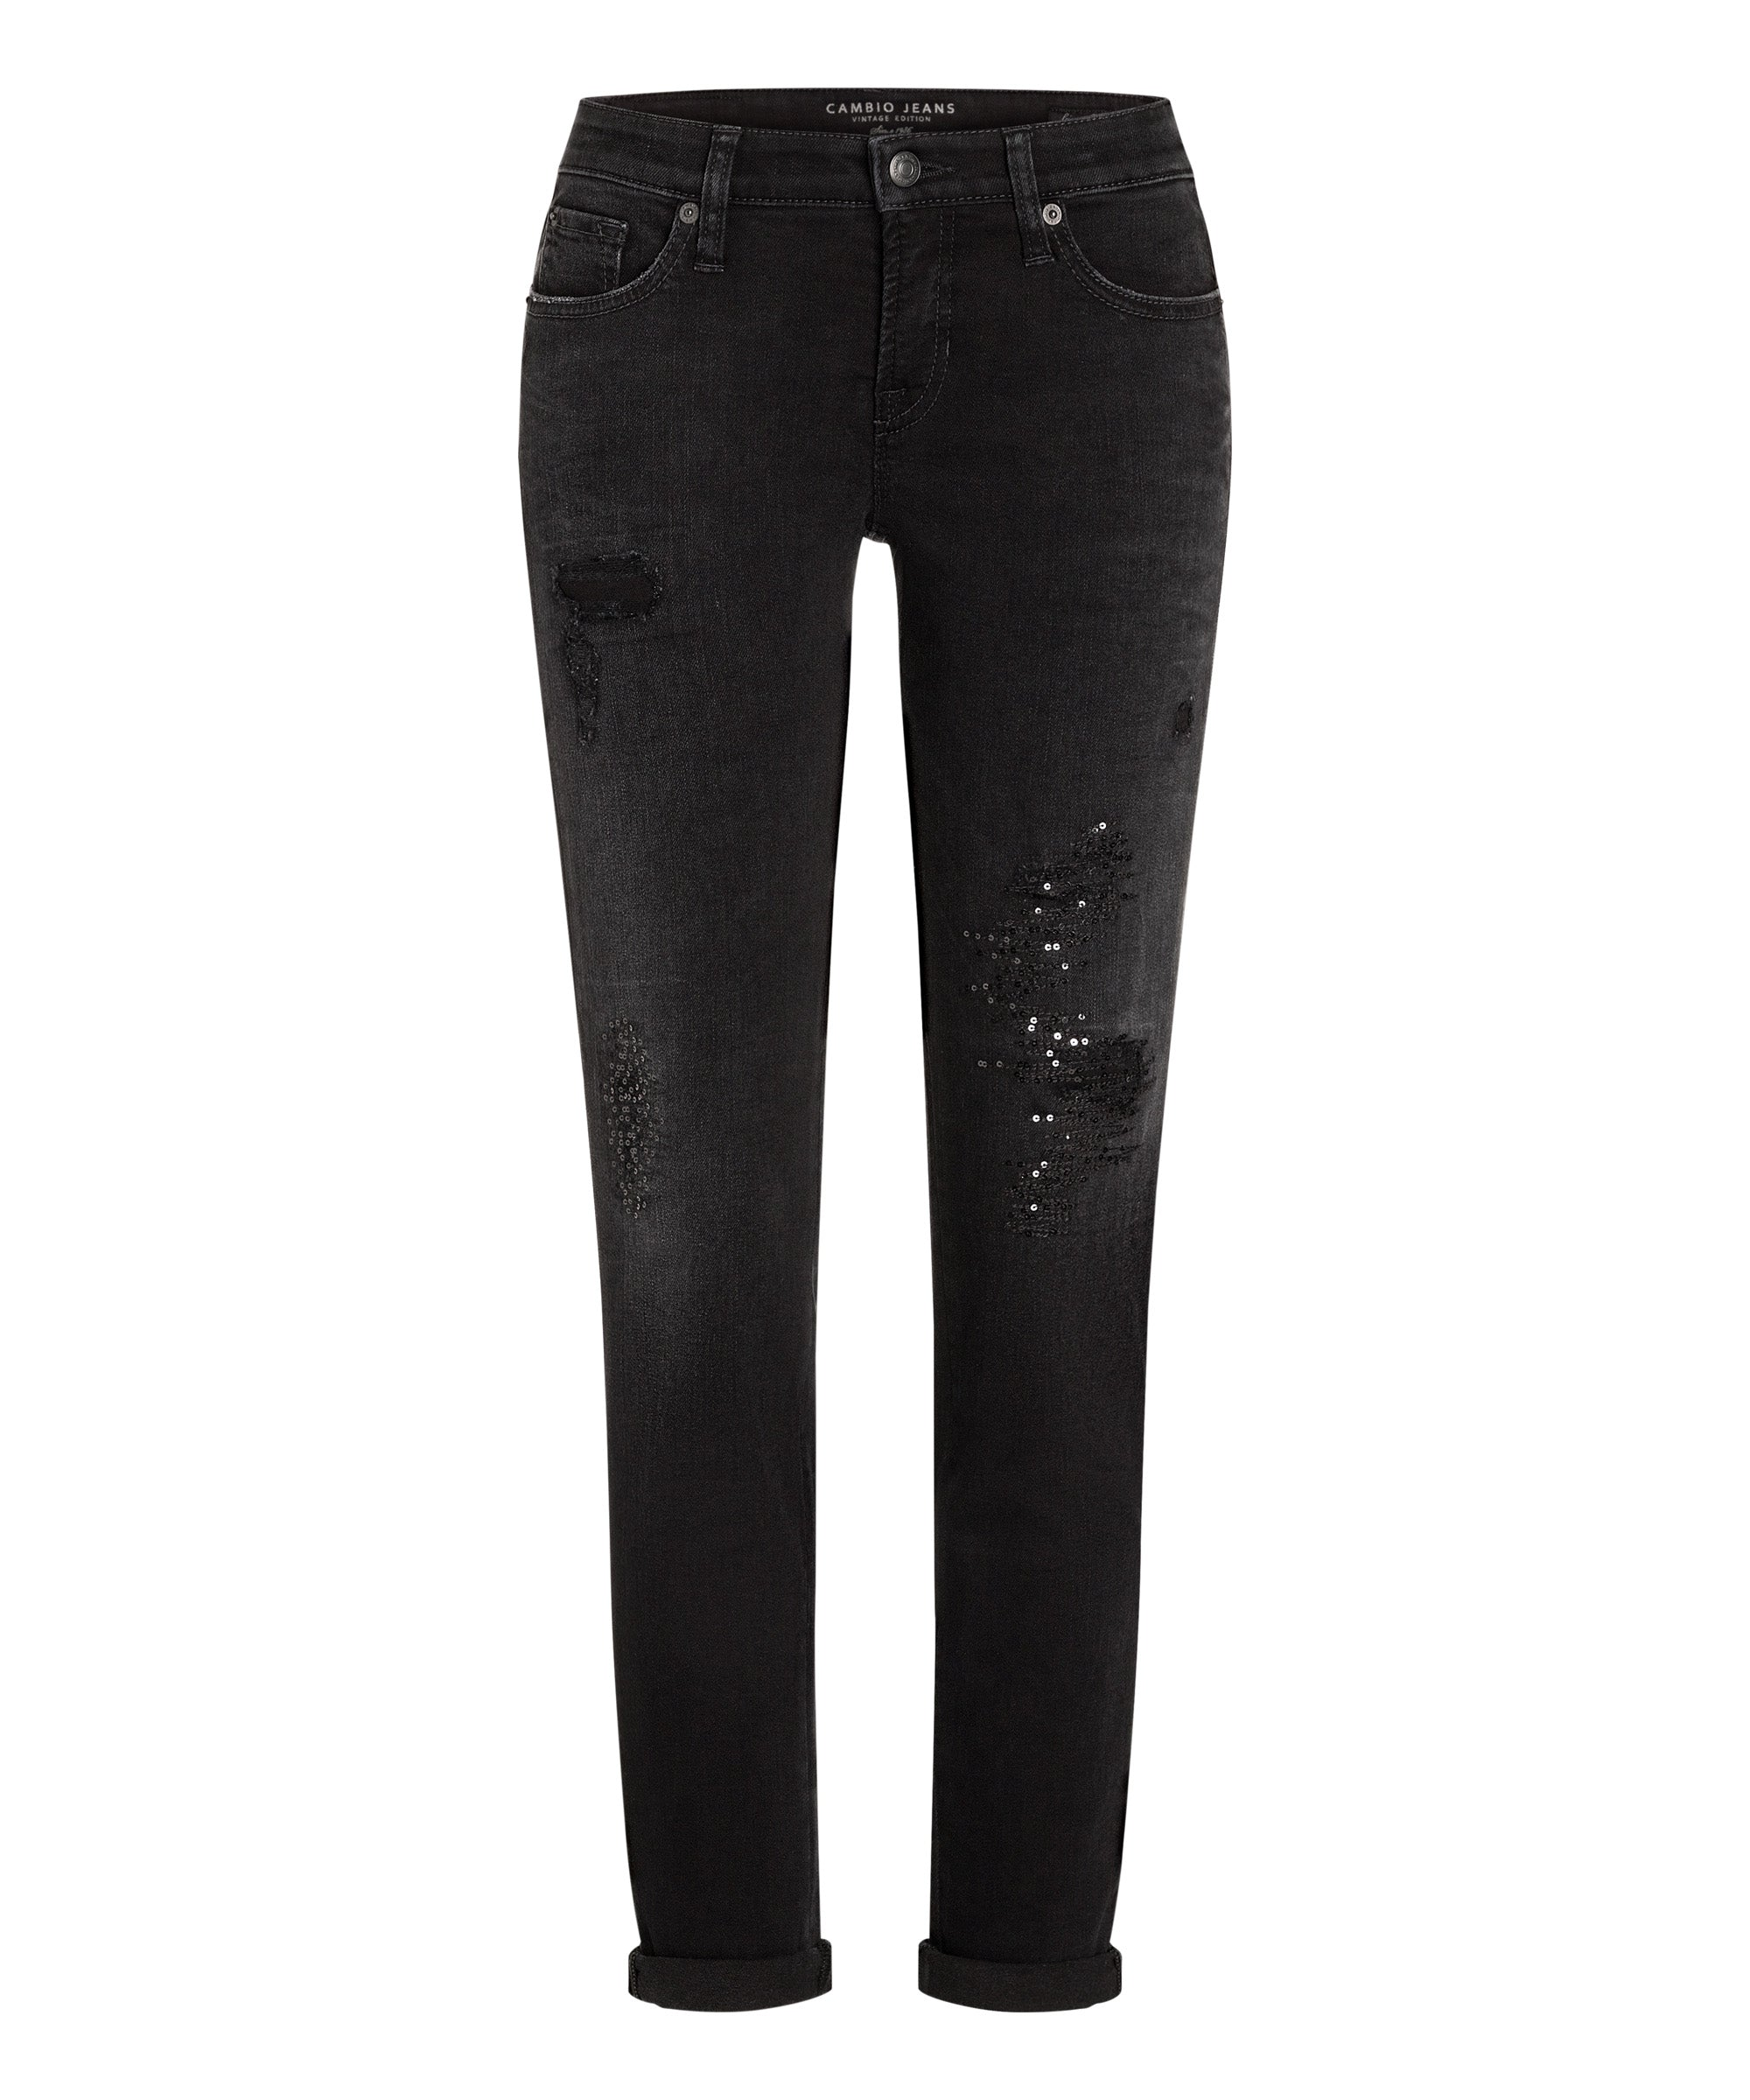 CAMBIO 7/8 LAURIE jeans